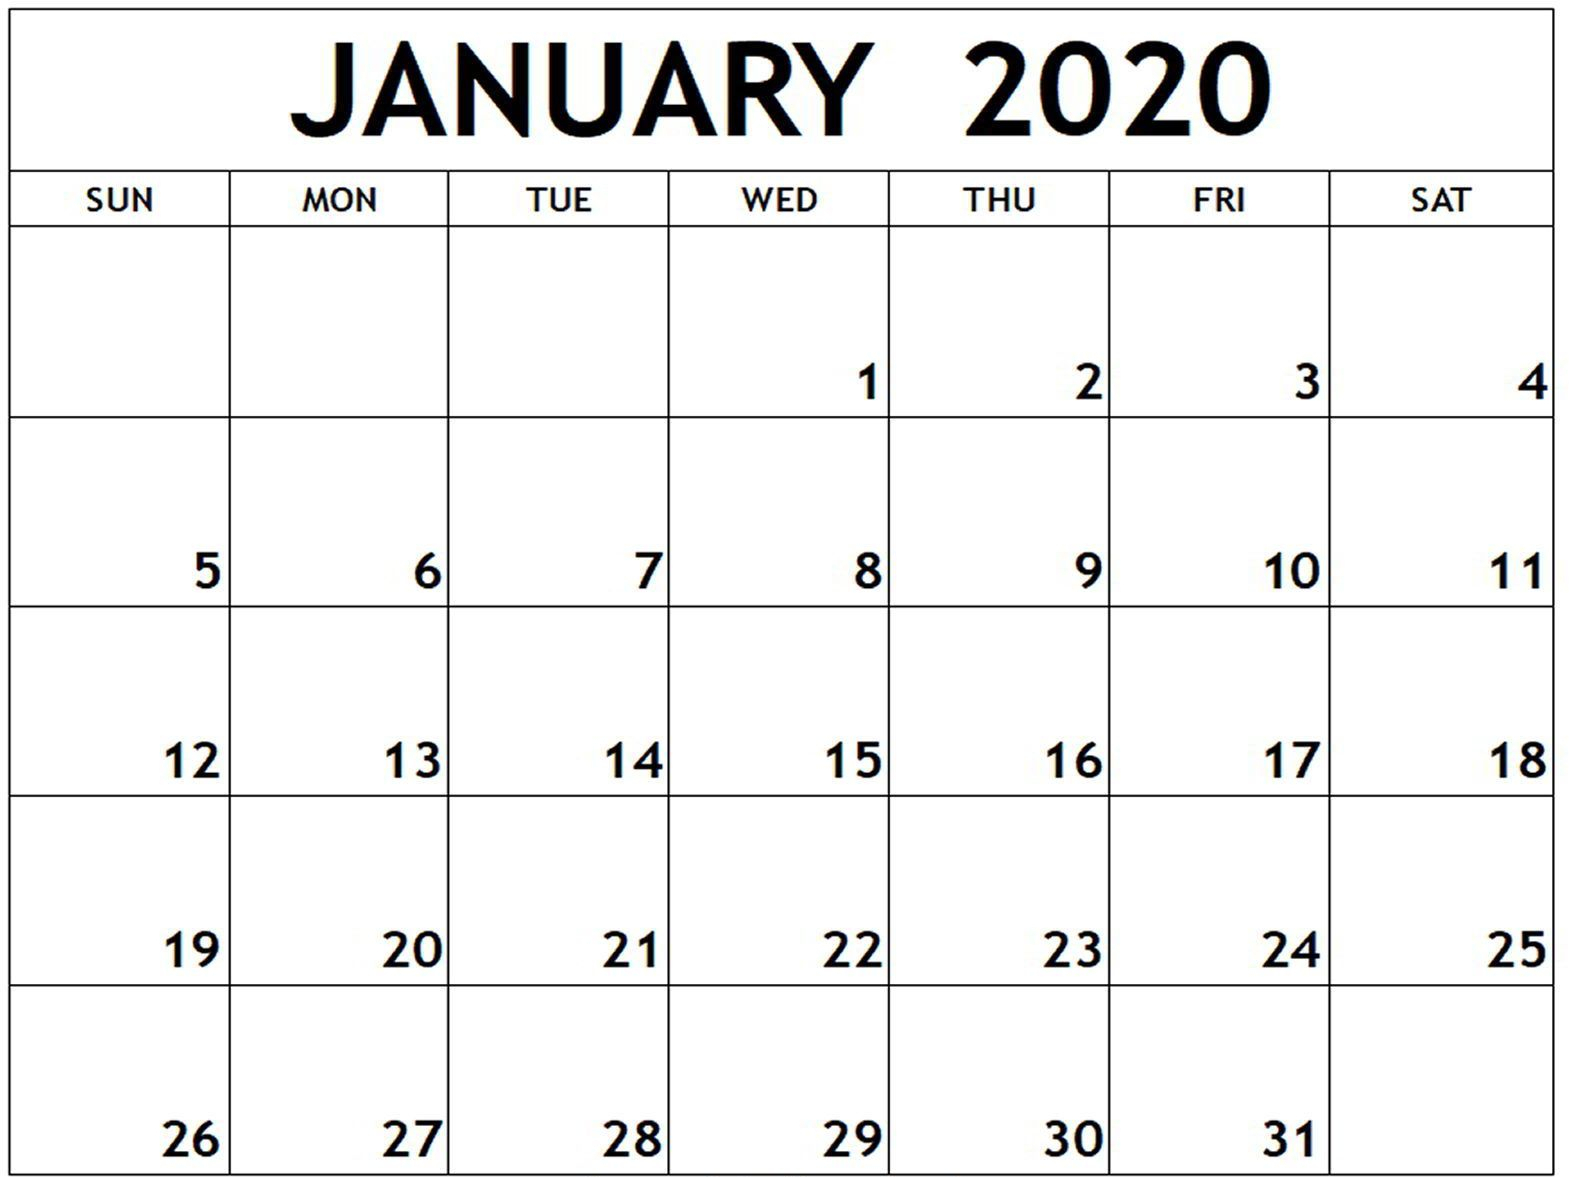 January 2020 Calendar Word Doc | Free Calendar Template regarding Printable January 2020 Calendar